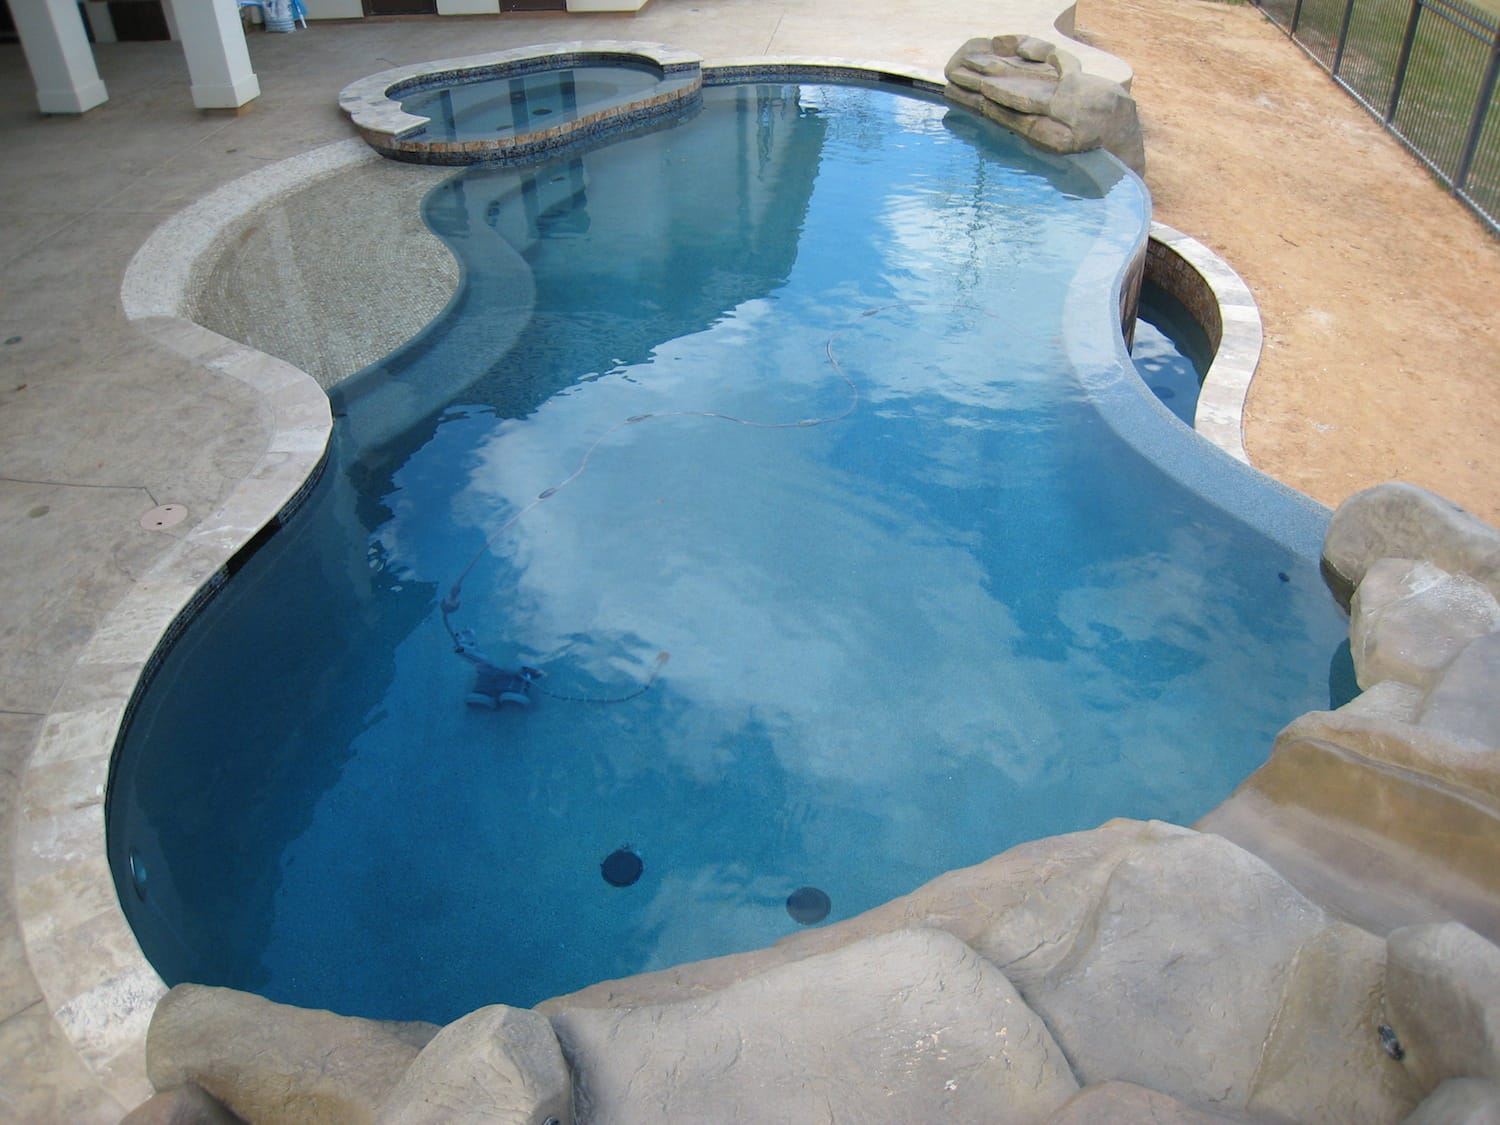 satin-matrix-tahitian-tropical-pool-finish-4